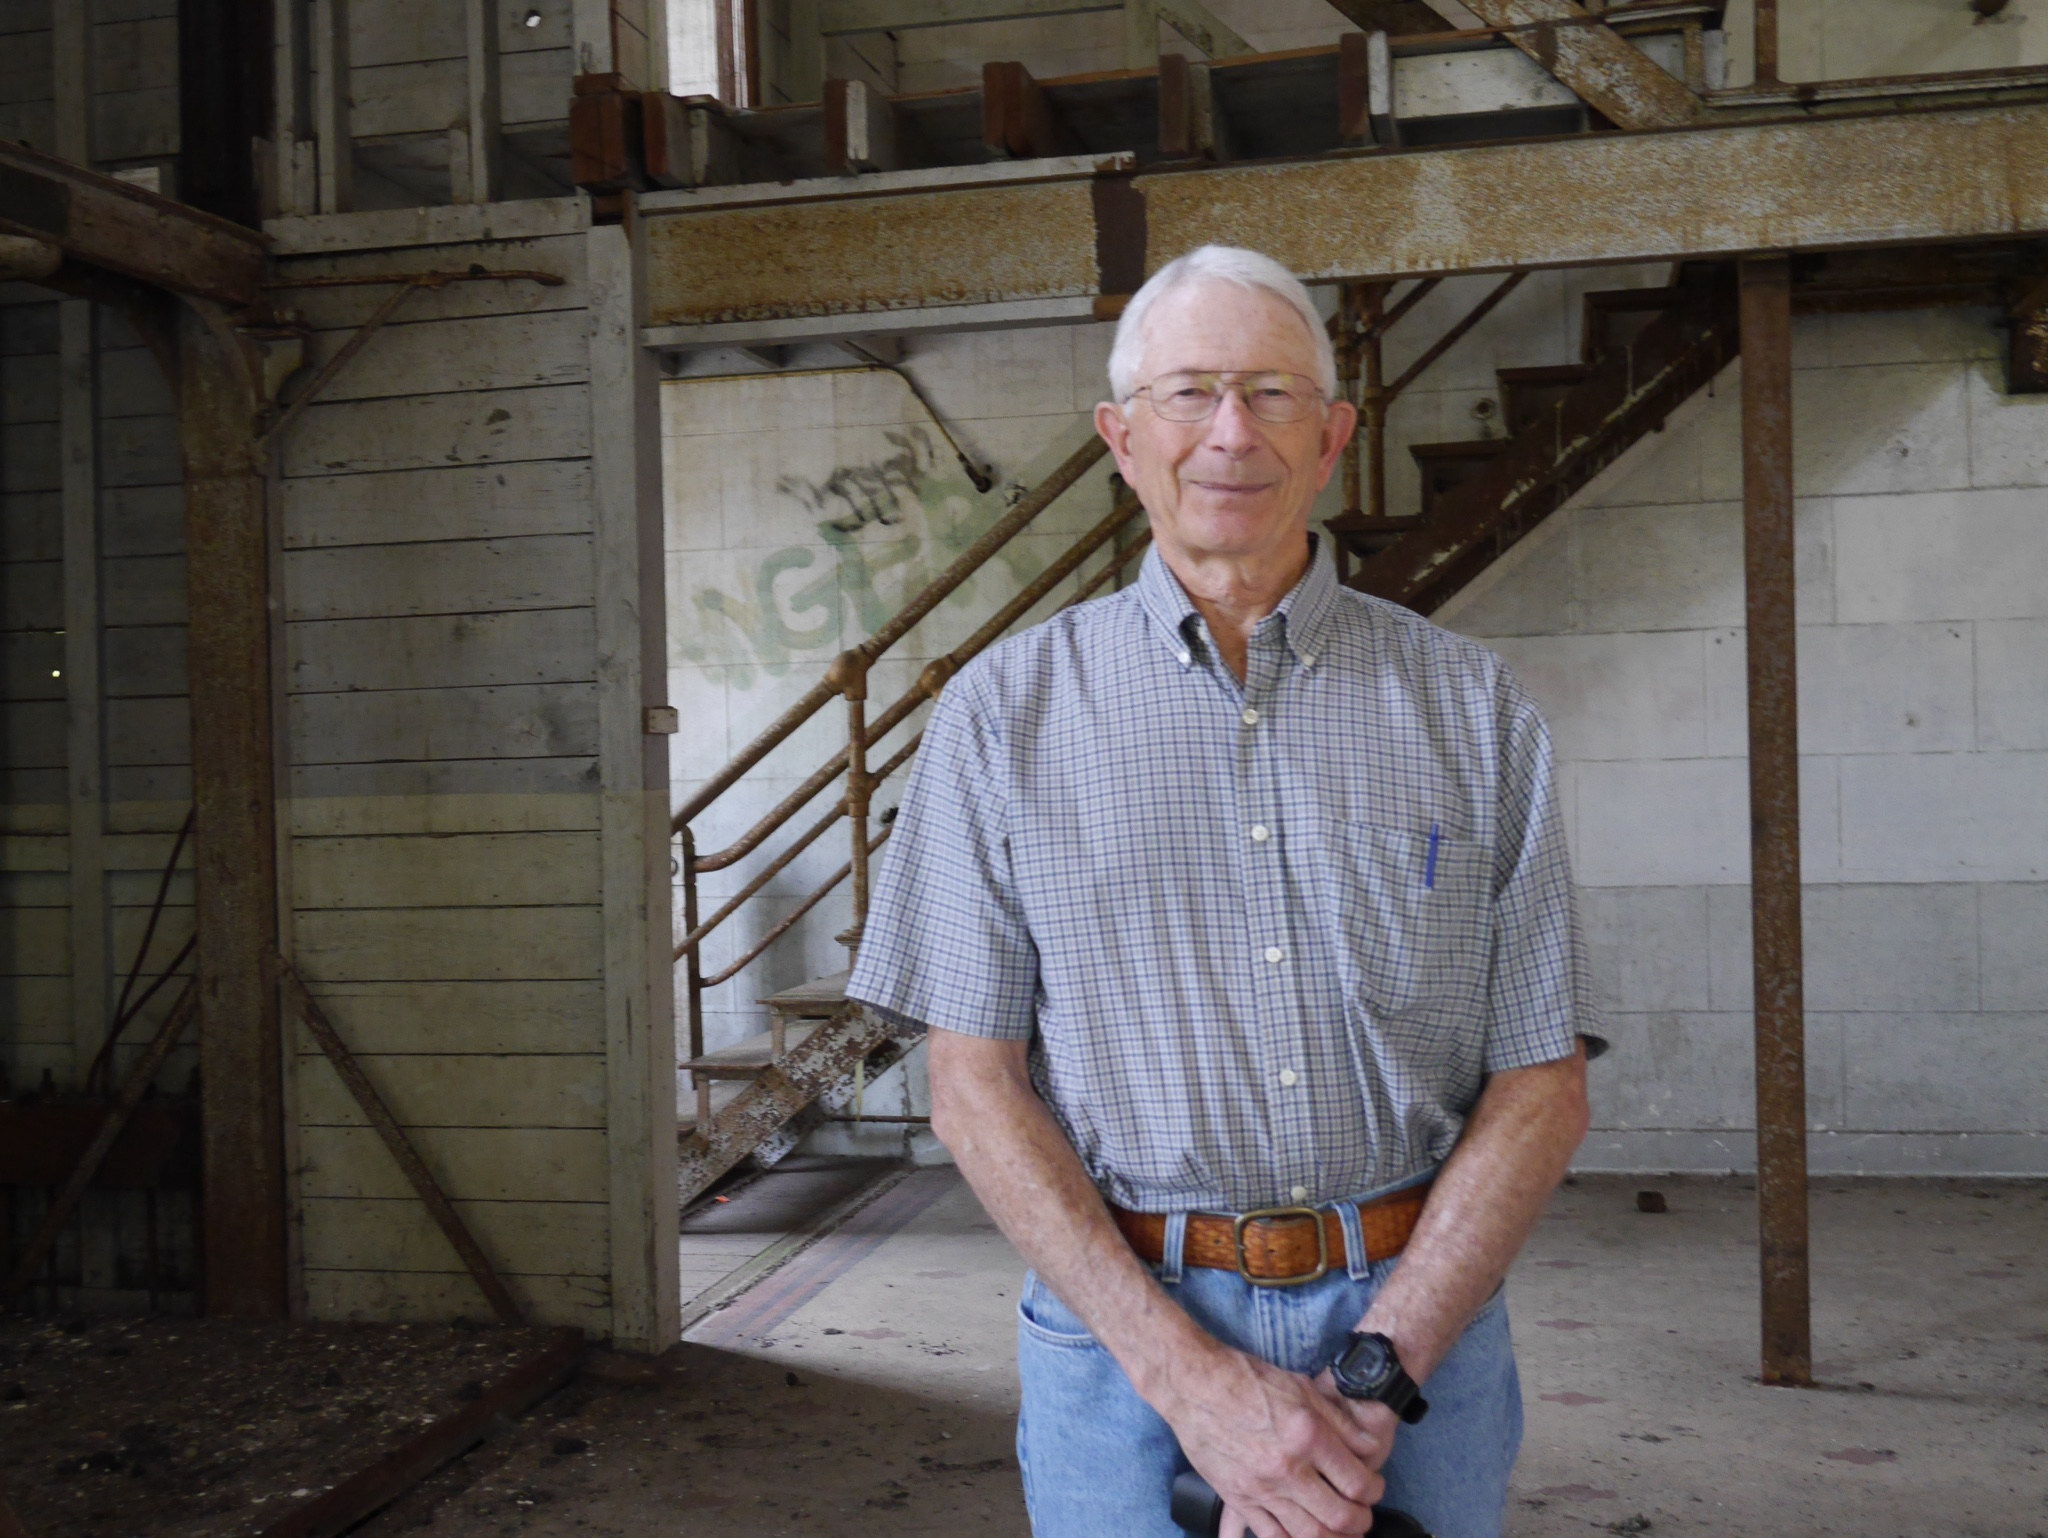 Longtime Olympia brewer Paul Knight inside the original Olympia brewery in Tumwater, Washington. (photo by Cat Stelzer)